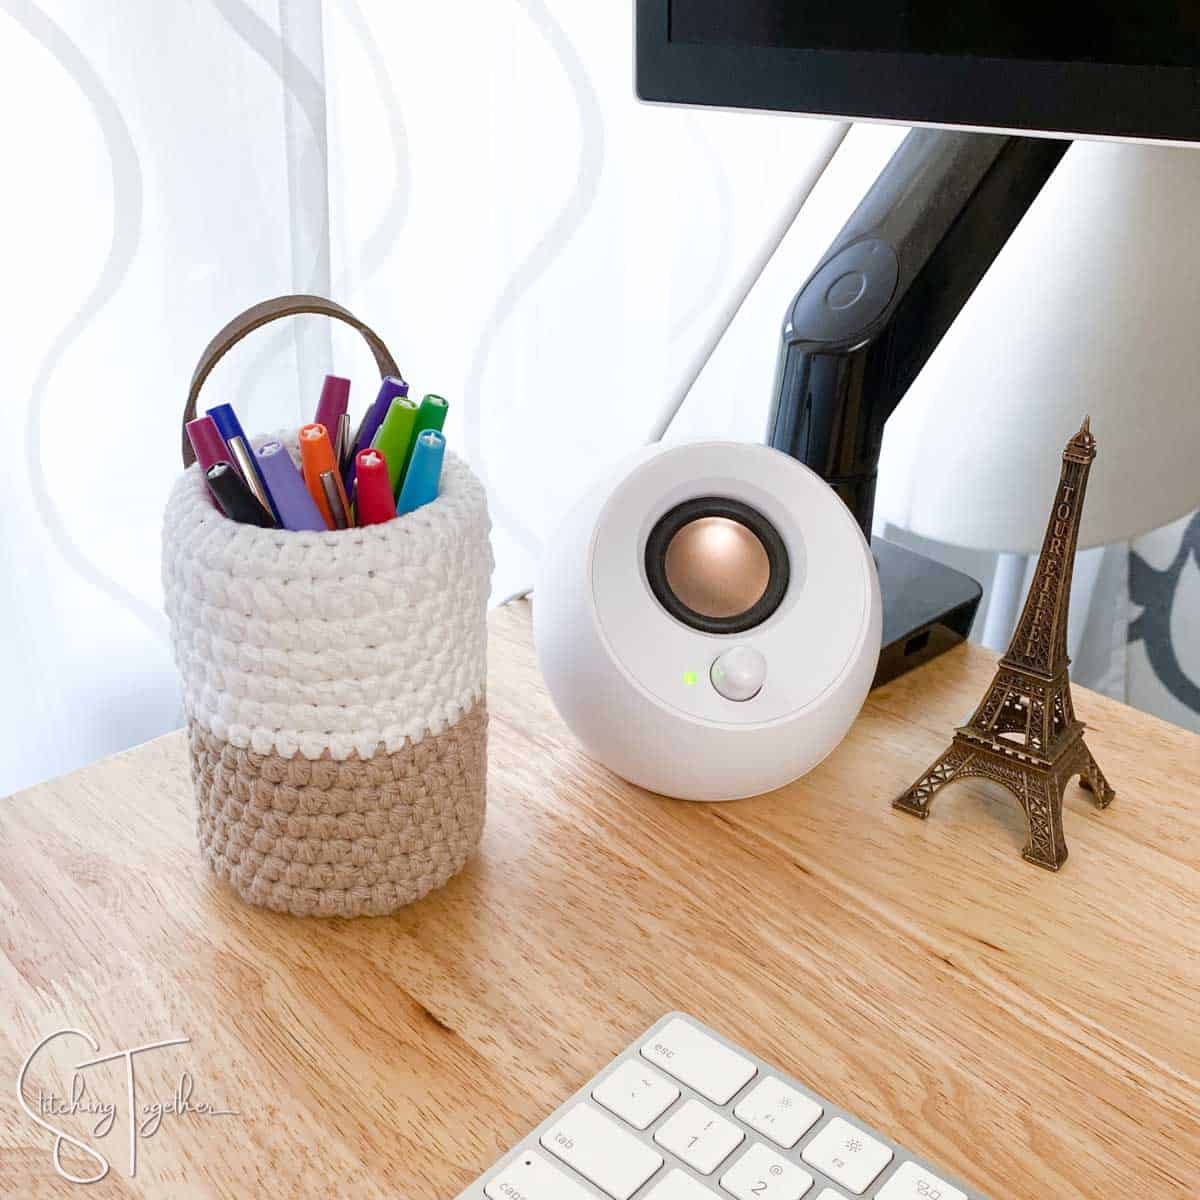 small crochet pen basket filled with colorful pens and sitting on a desk